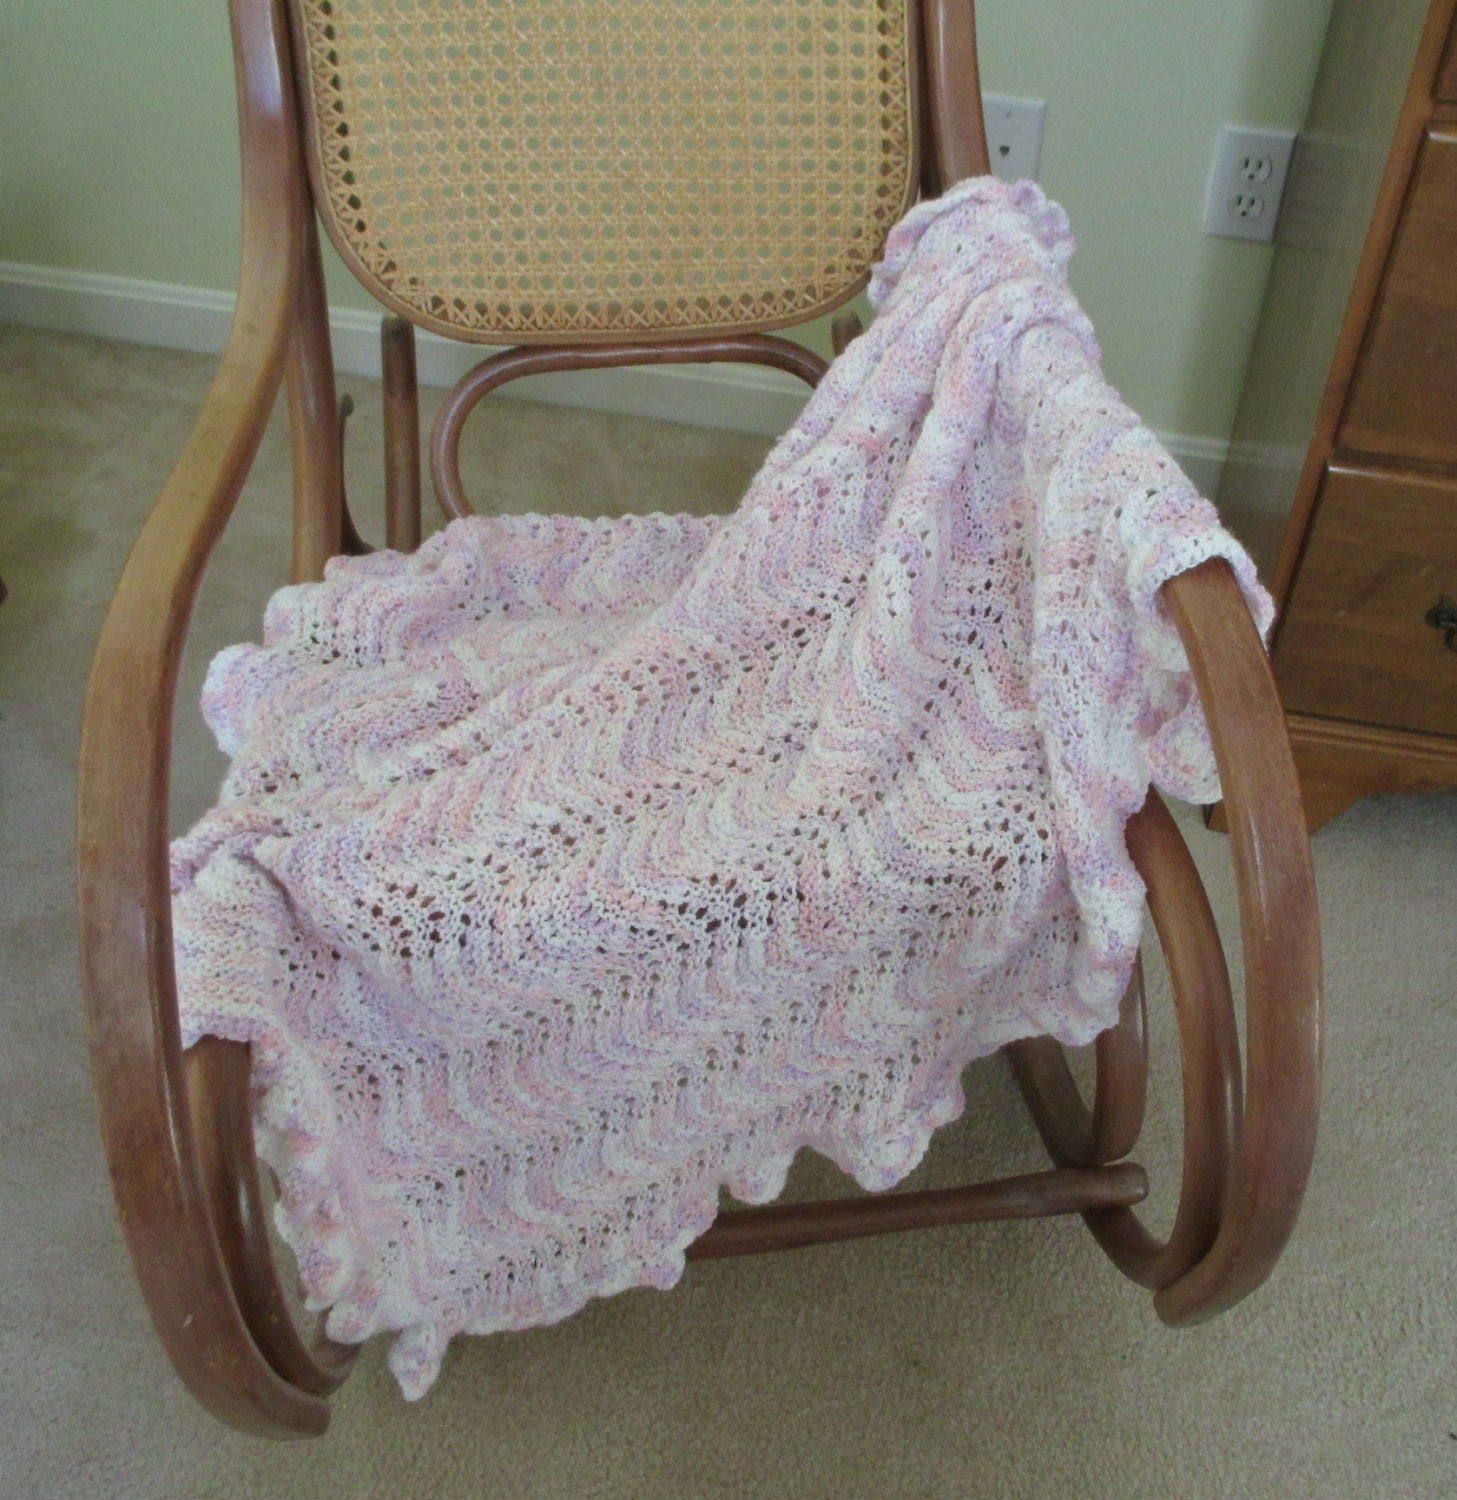 Knitting Edges For Baby Blankets : Knitted baby blanket with crochet edging by stitchingknitting